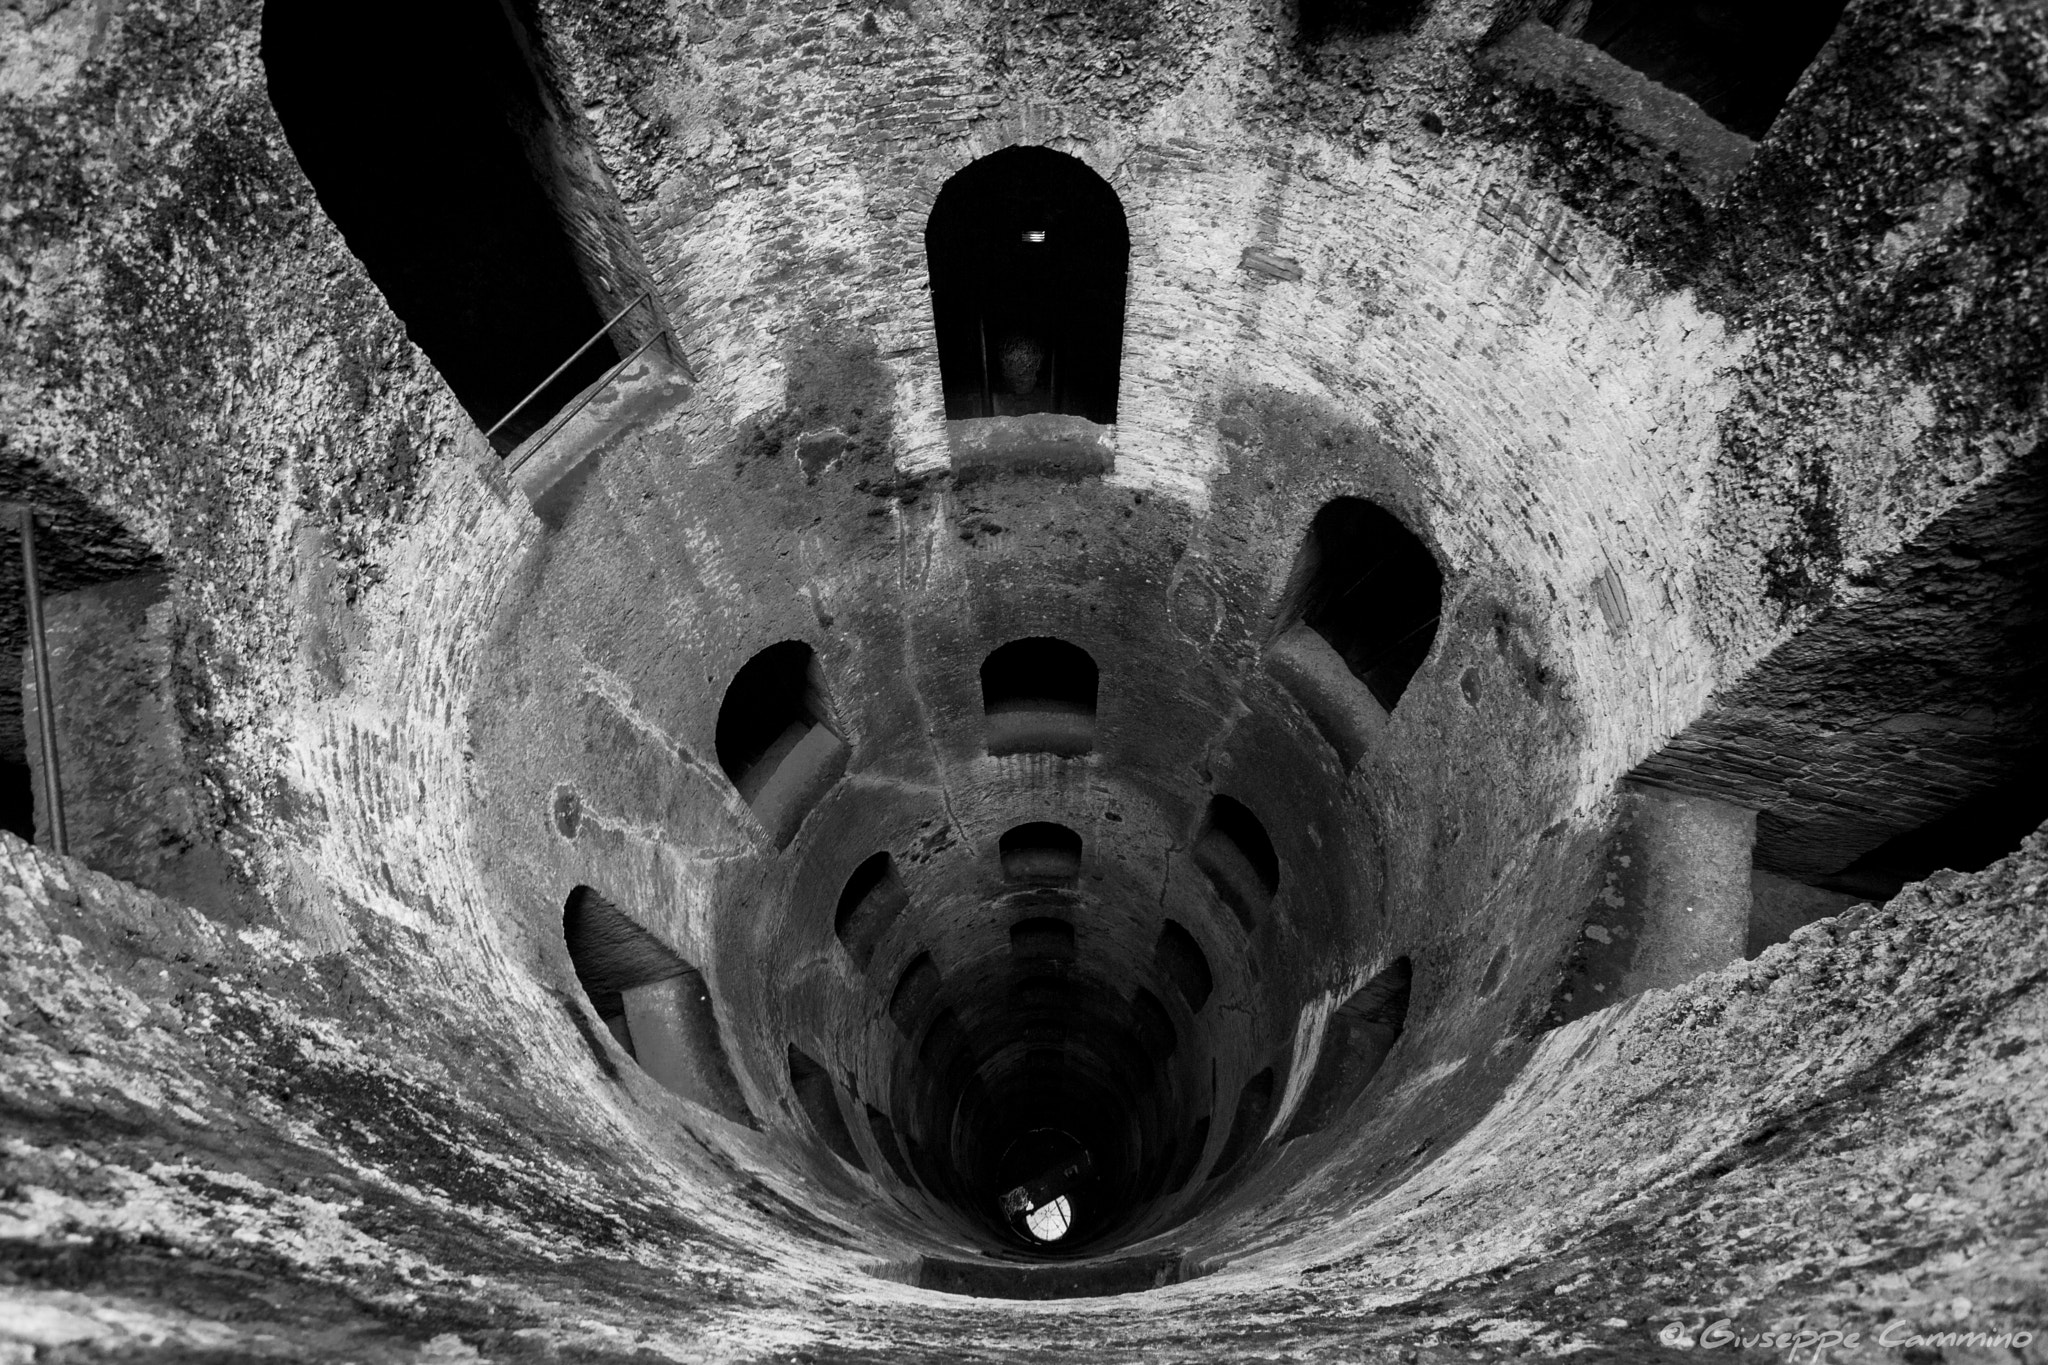 Photograph Orvieto - St. Patrick's Well 01 by Giuseppe Cammino on 500px